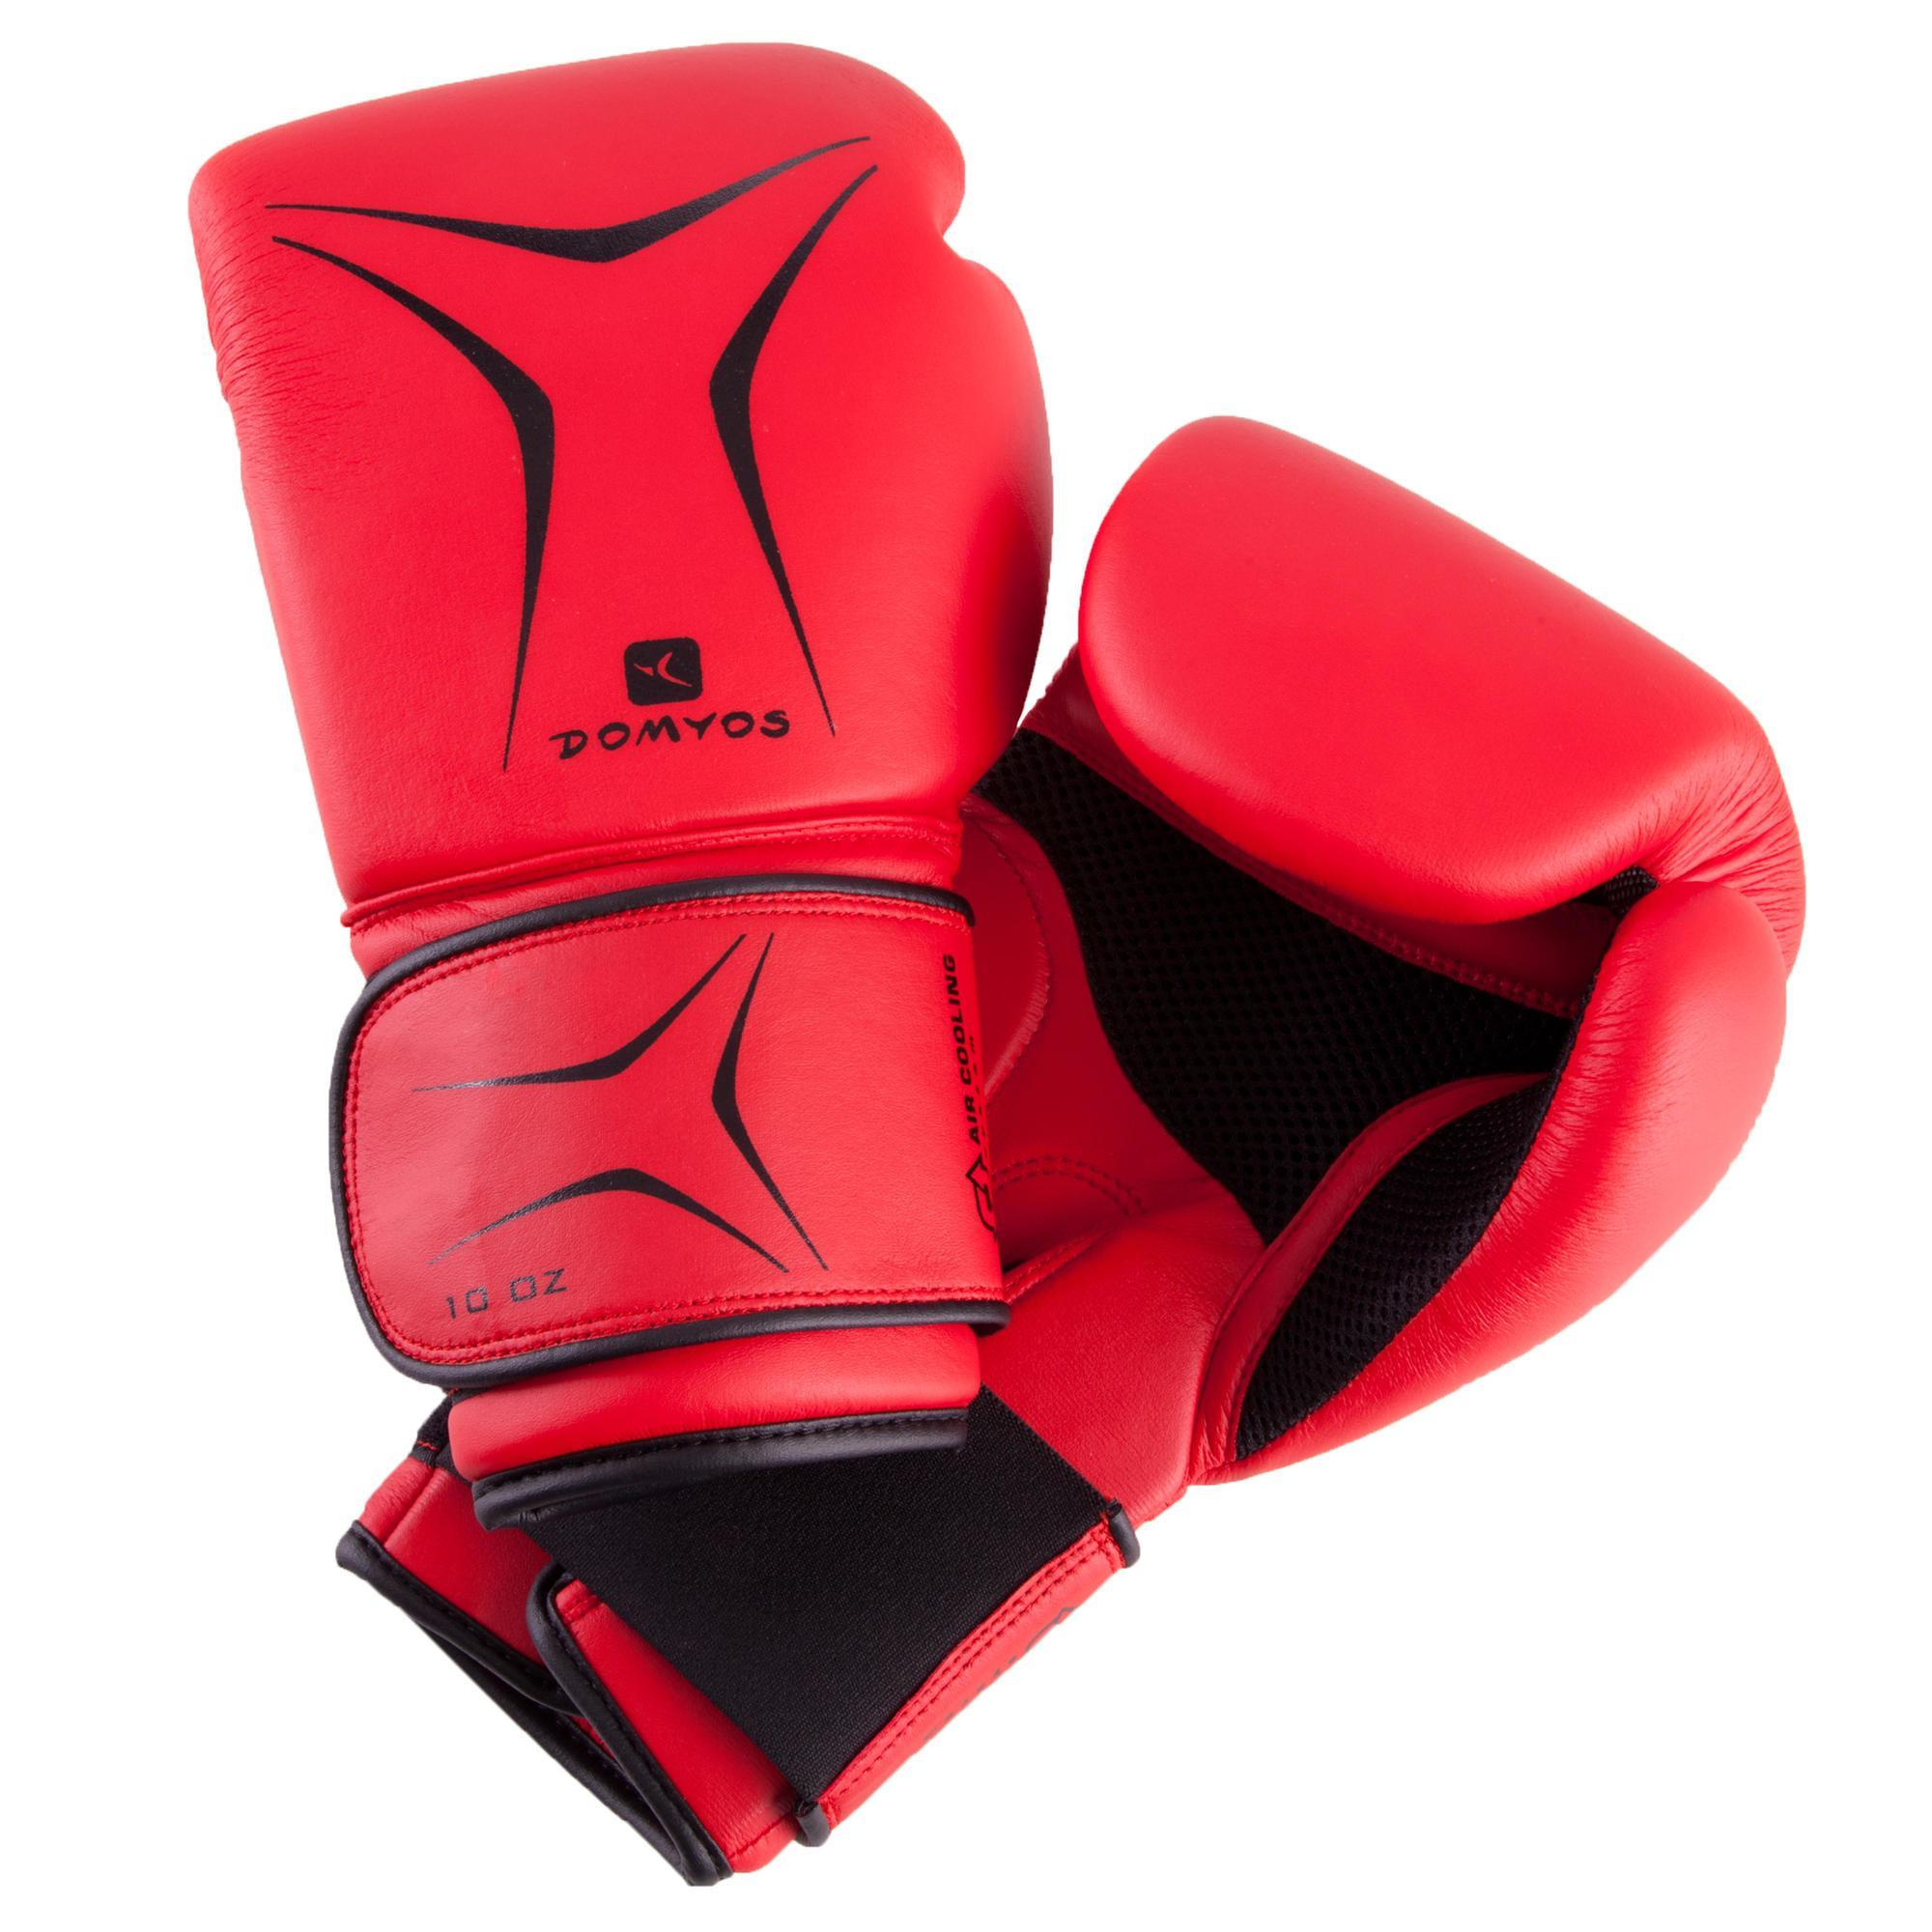 fkt 180 beginners boxing gloves red domyos by decathlon